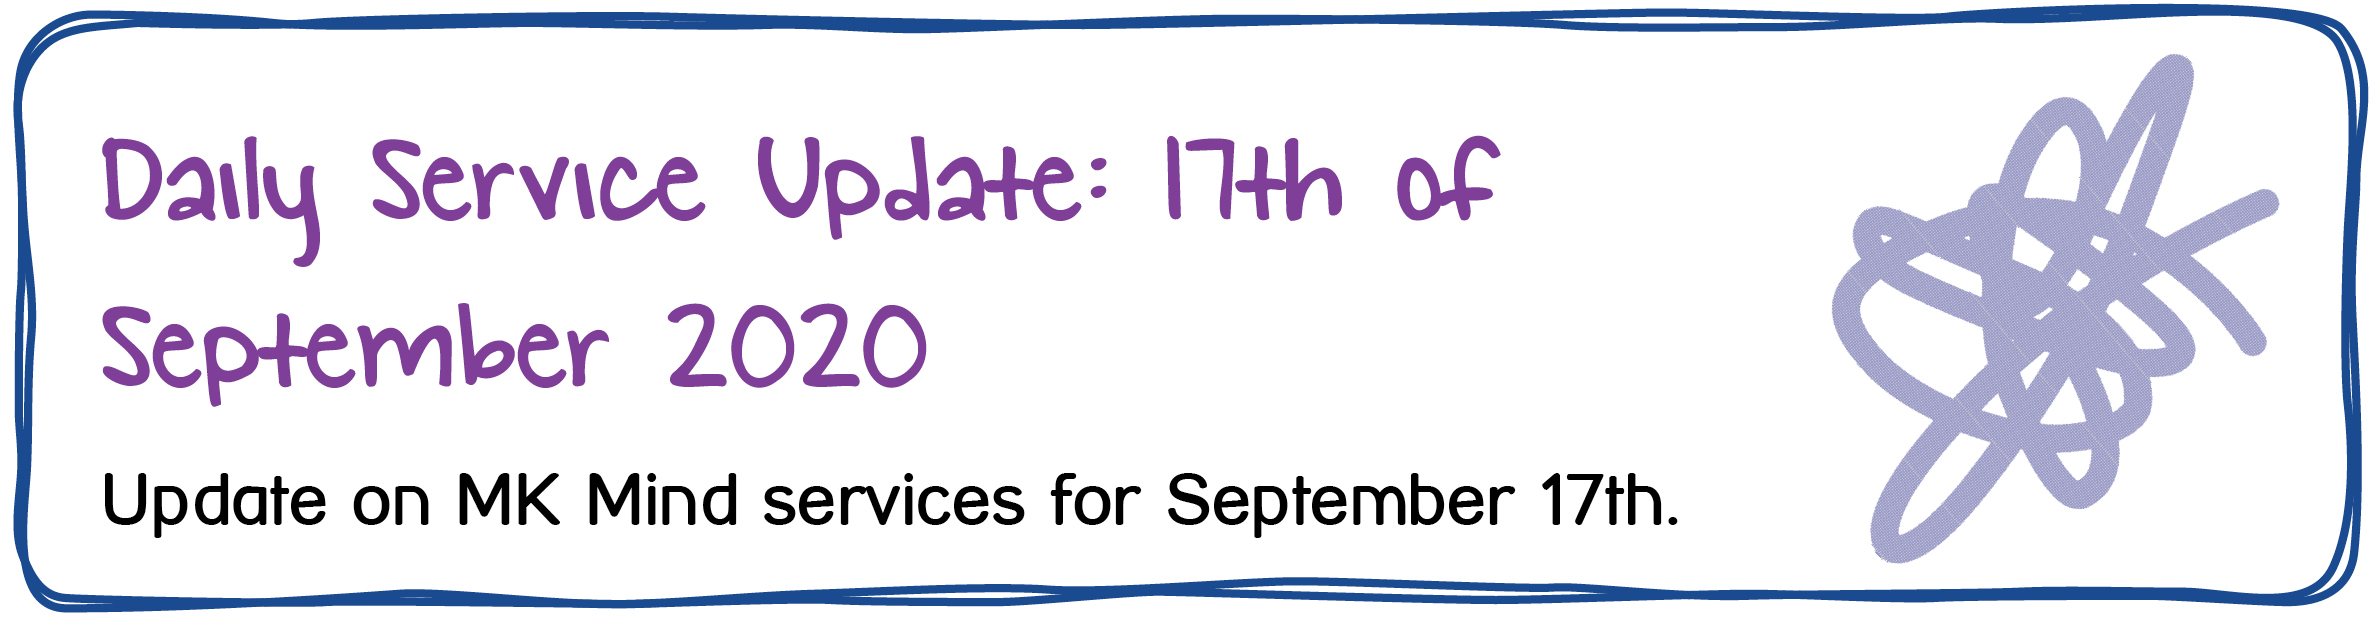 Daily Service Update: 17th of September 2020. Update on Mid Kent Mind services for September 17th.